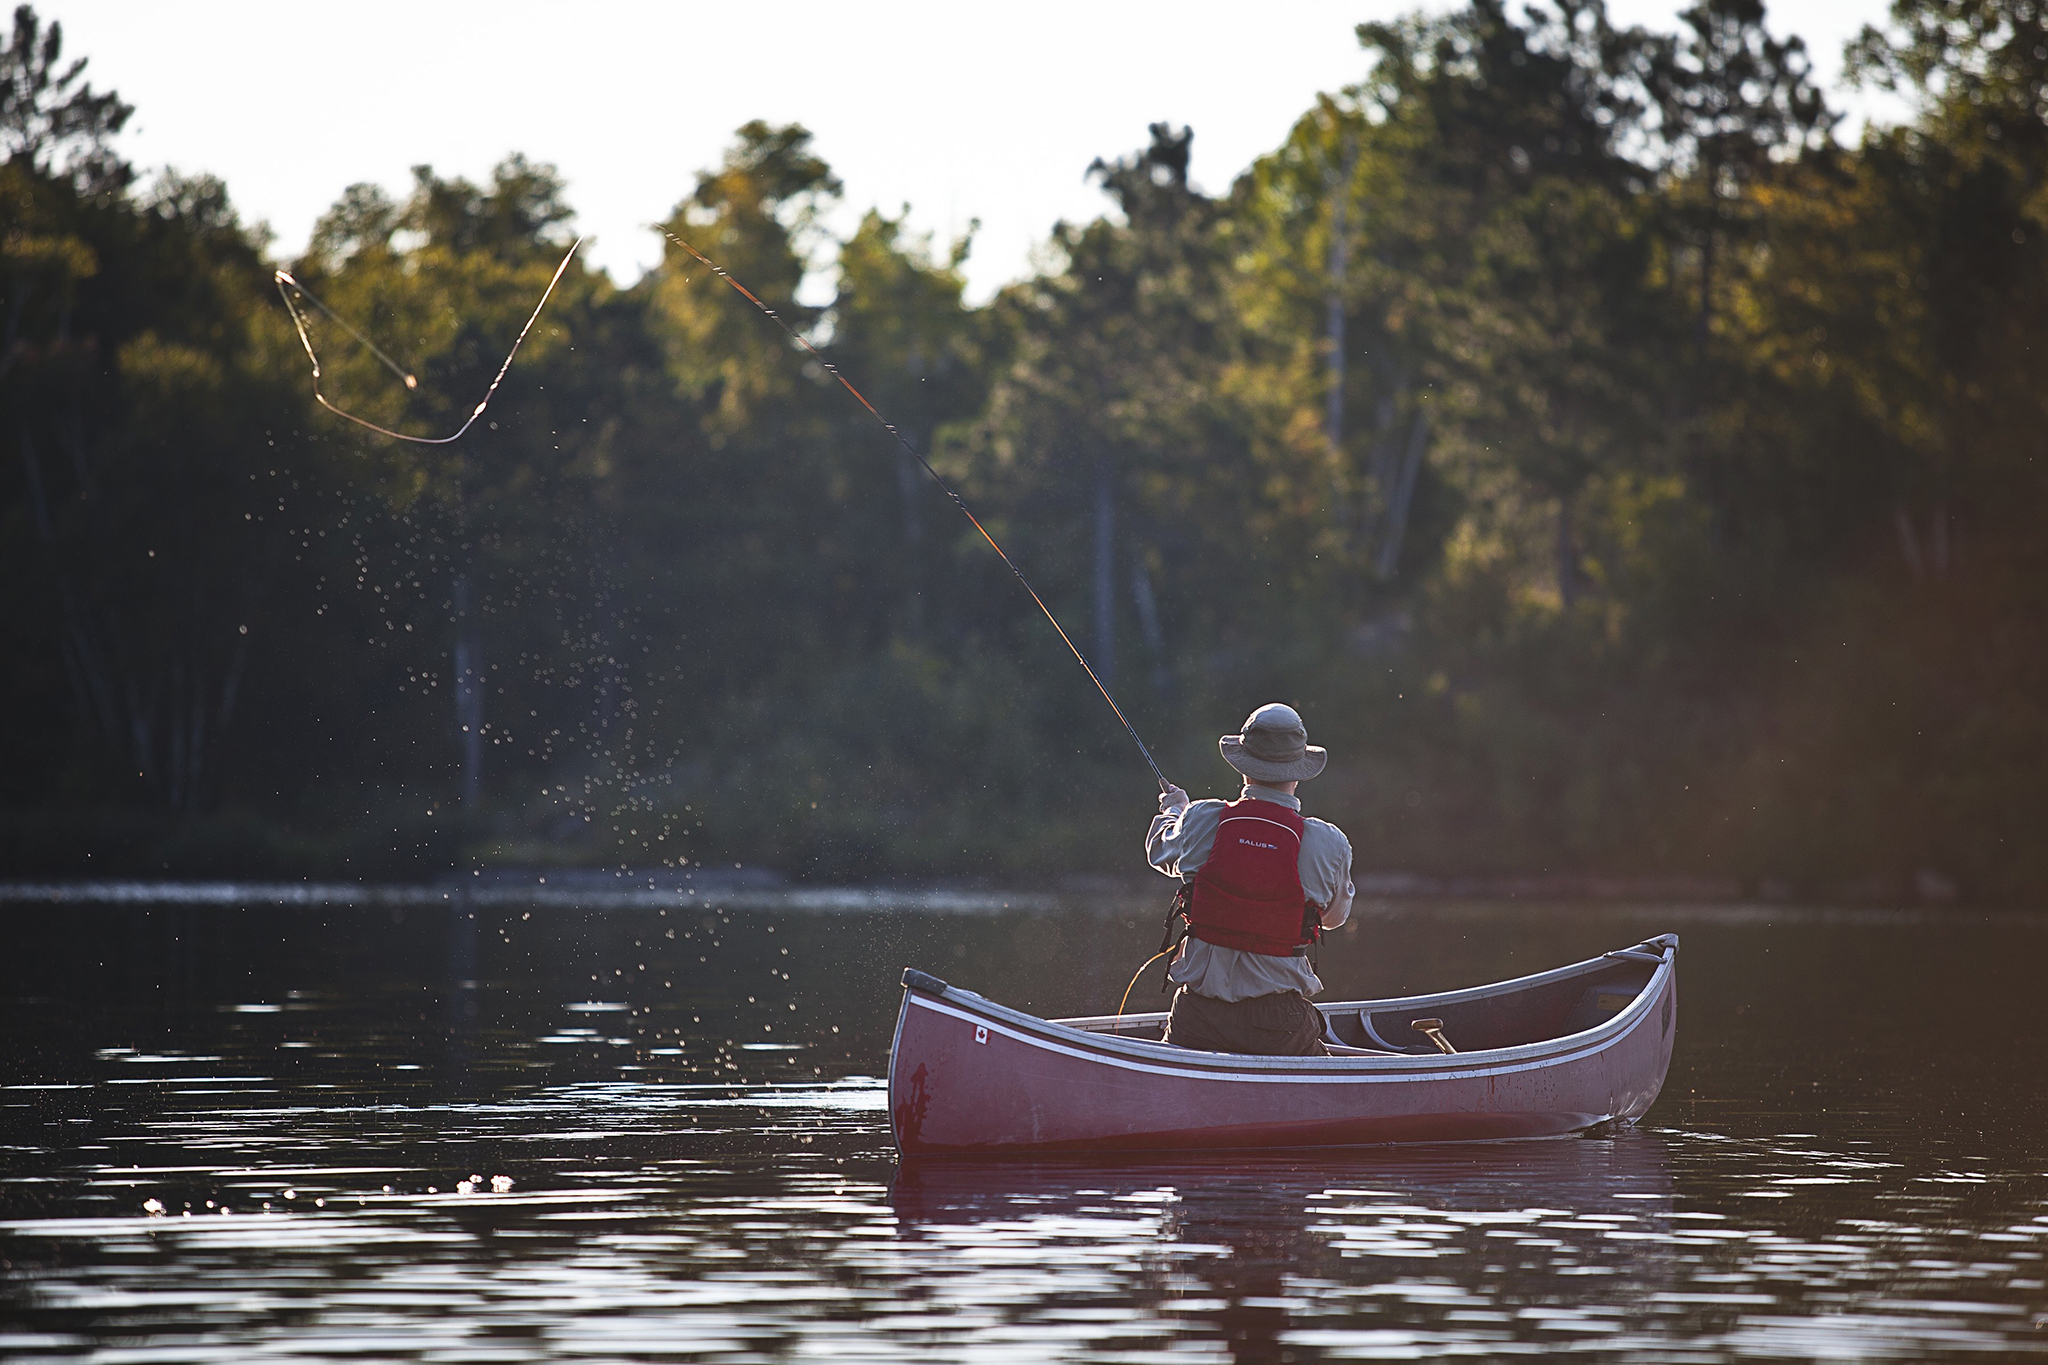 A man casting his line from a boat on a lake